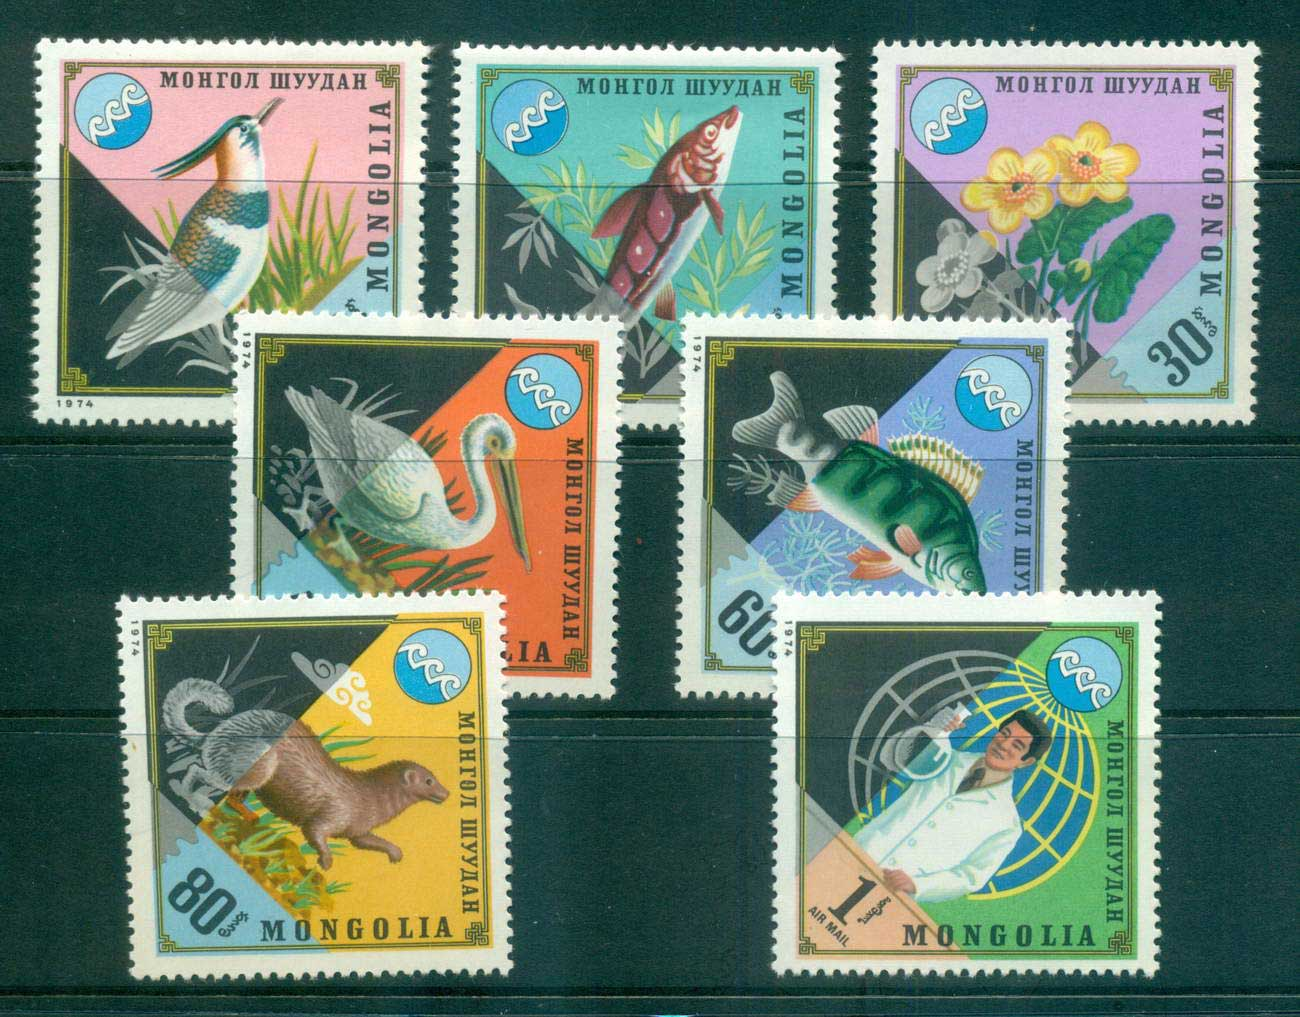 Mongolia 1974 Water & Nature Protection MUH lot56006